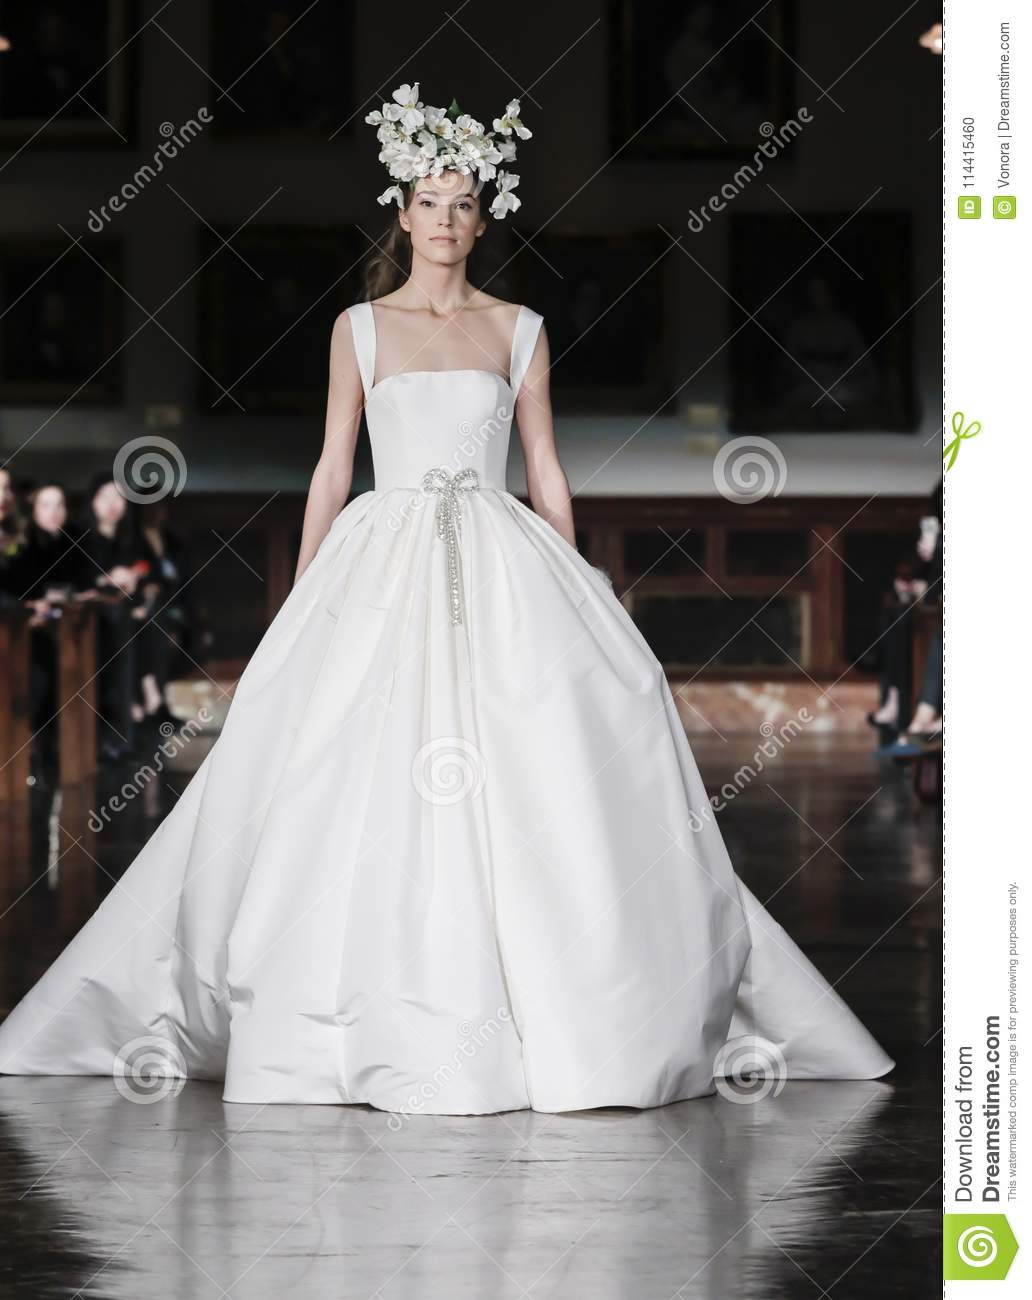 4b2d5e3b47bb New York, NY, USA - April 12, 2018: A model walks runway for Reem Acra  Bridal Spring/Summer 2019 runway show during NY Bridal Wweek at NY Public  Library, ...